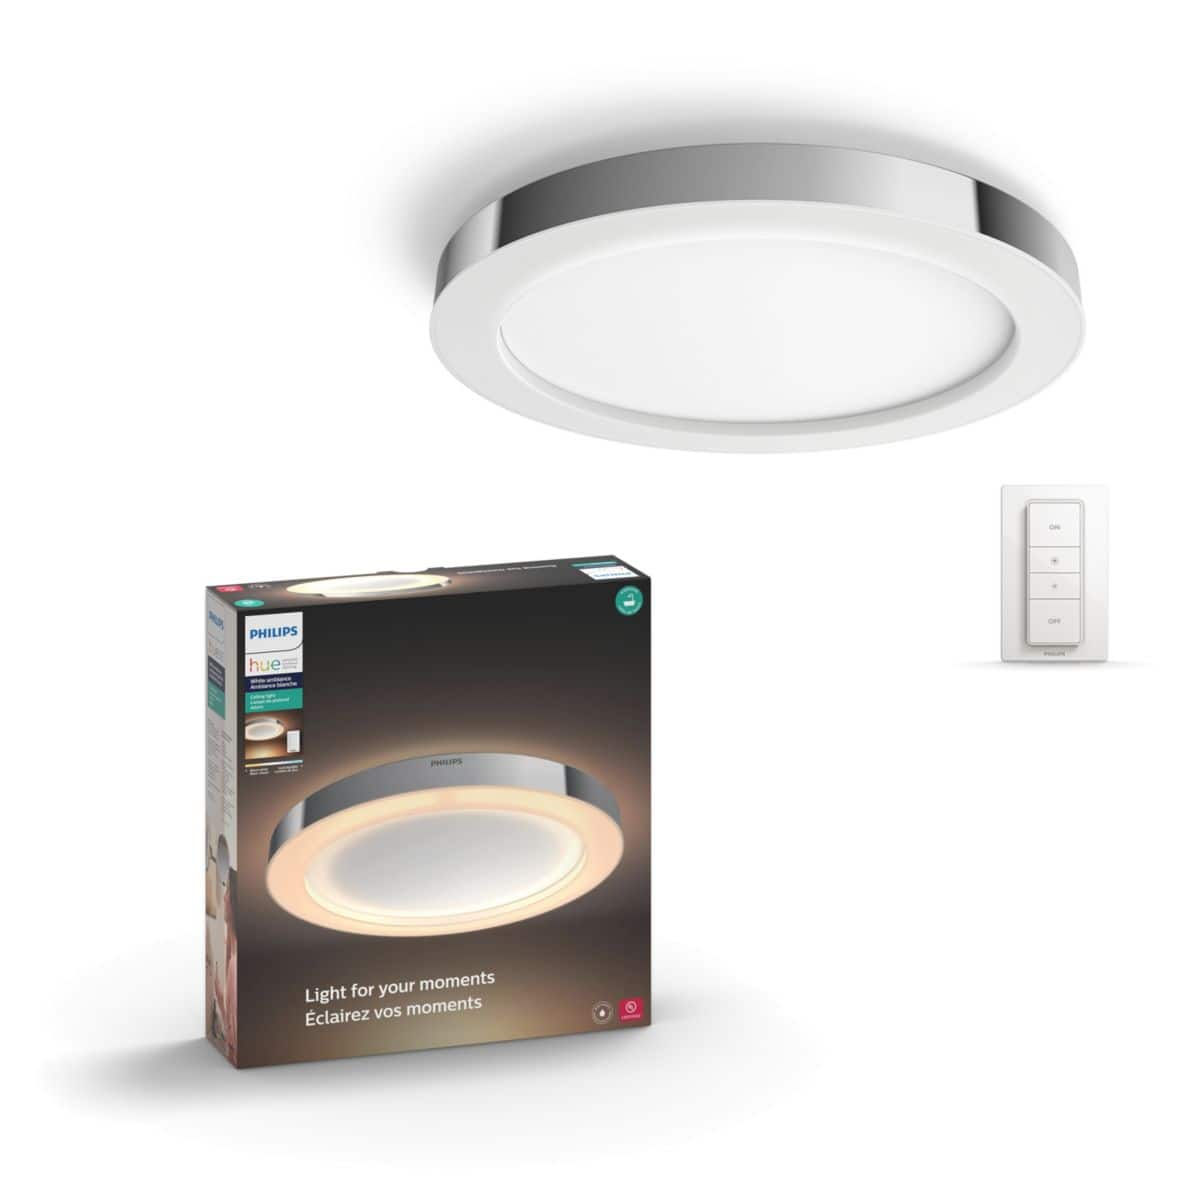 Philips Hue Adore Ceiling Light and Included Dimmer Switch $126